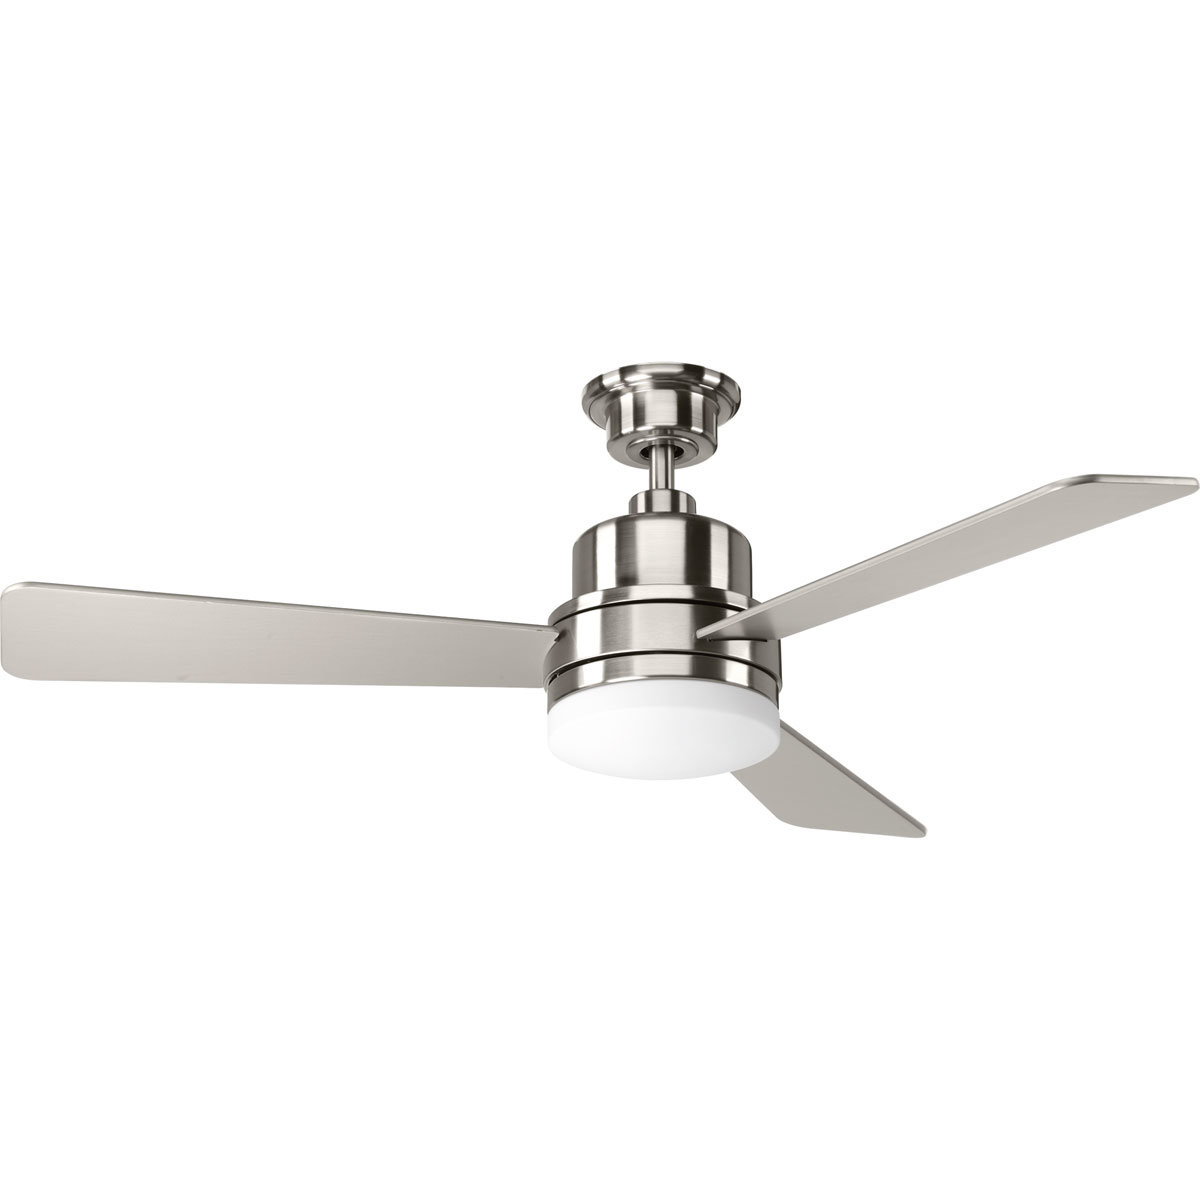 """Smoak 3 Blade Ceiling Fans Throughout Most Current 52"""" Rathburn 3 Blade Ceiling Fan, Light Kit Included (View 18 of 20)"""